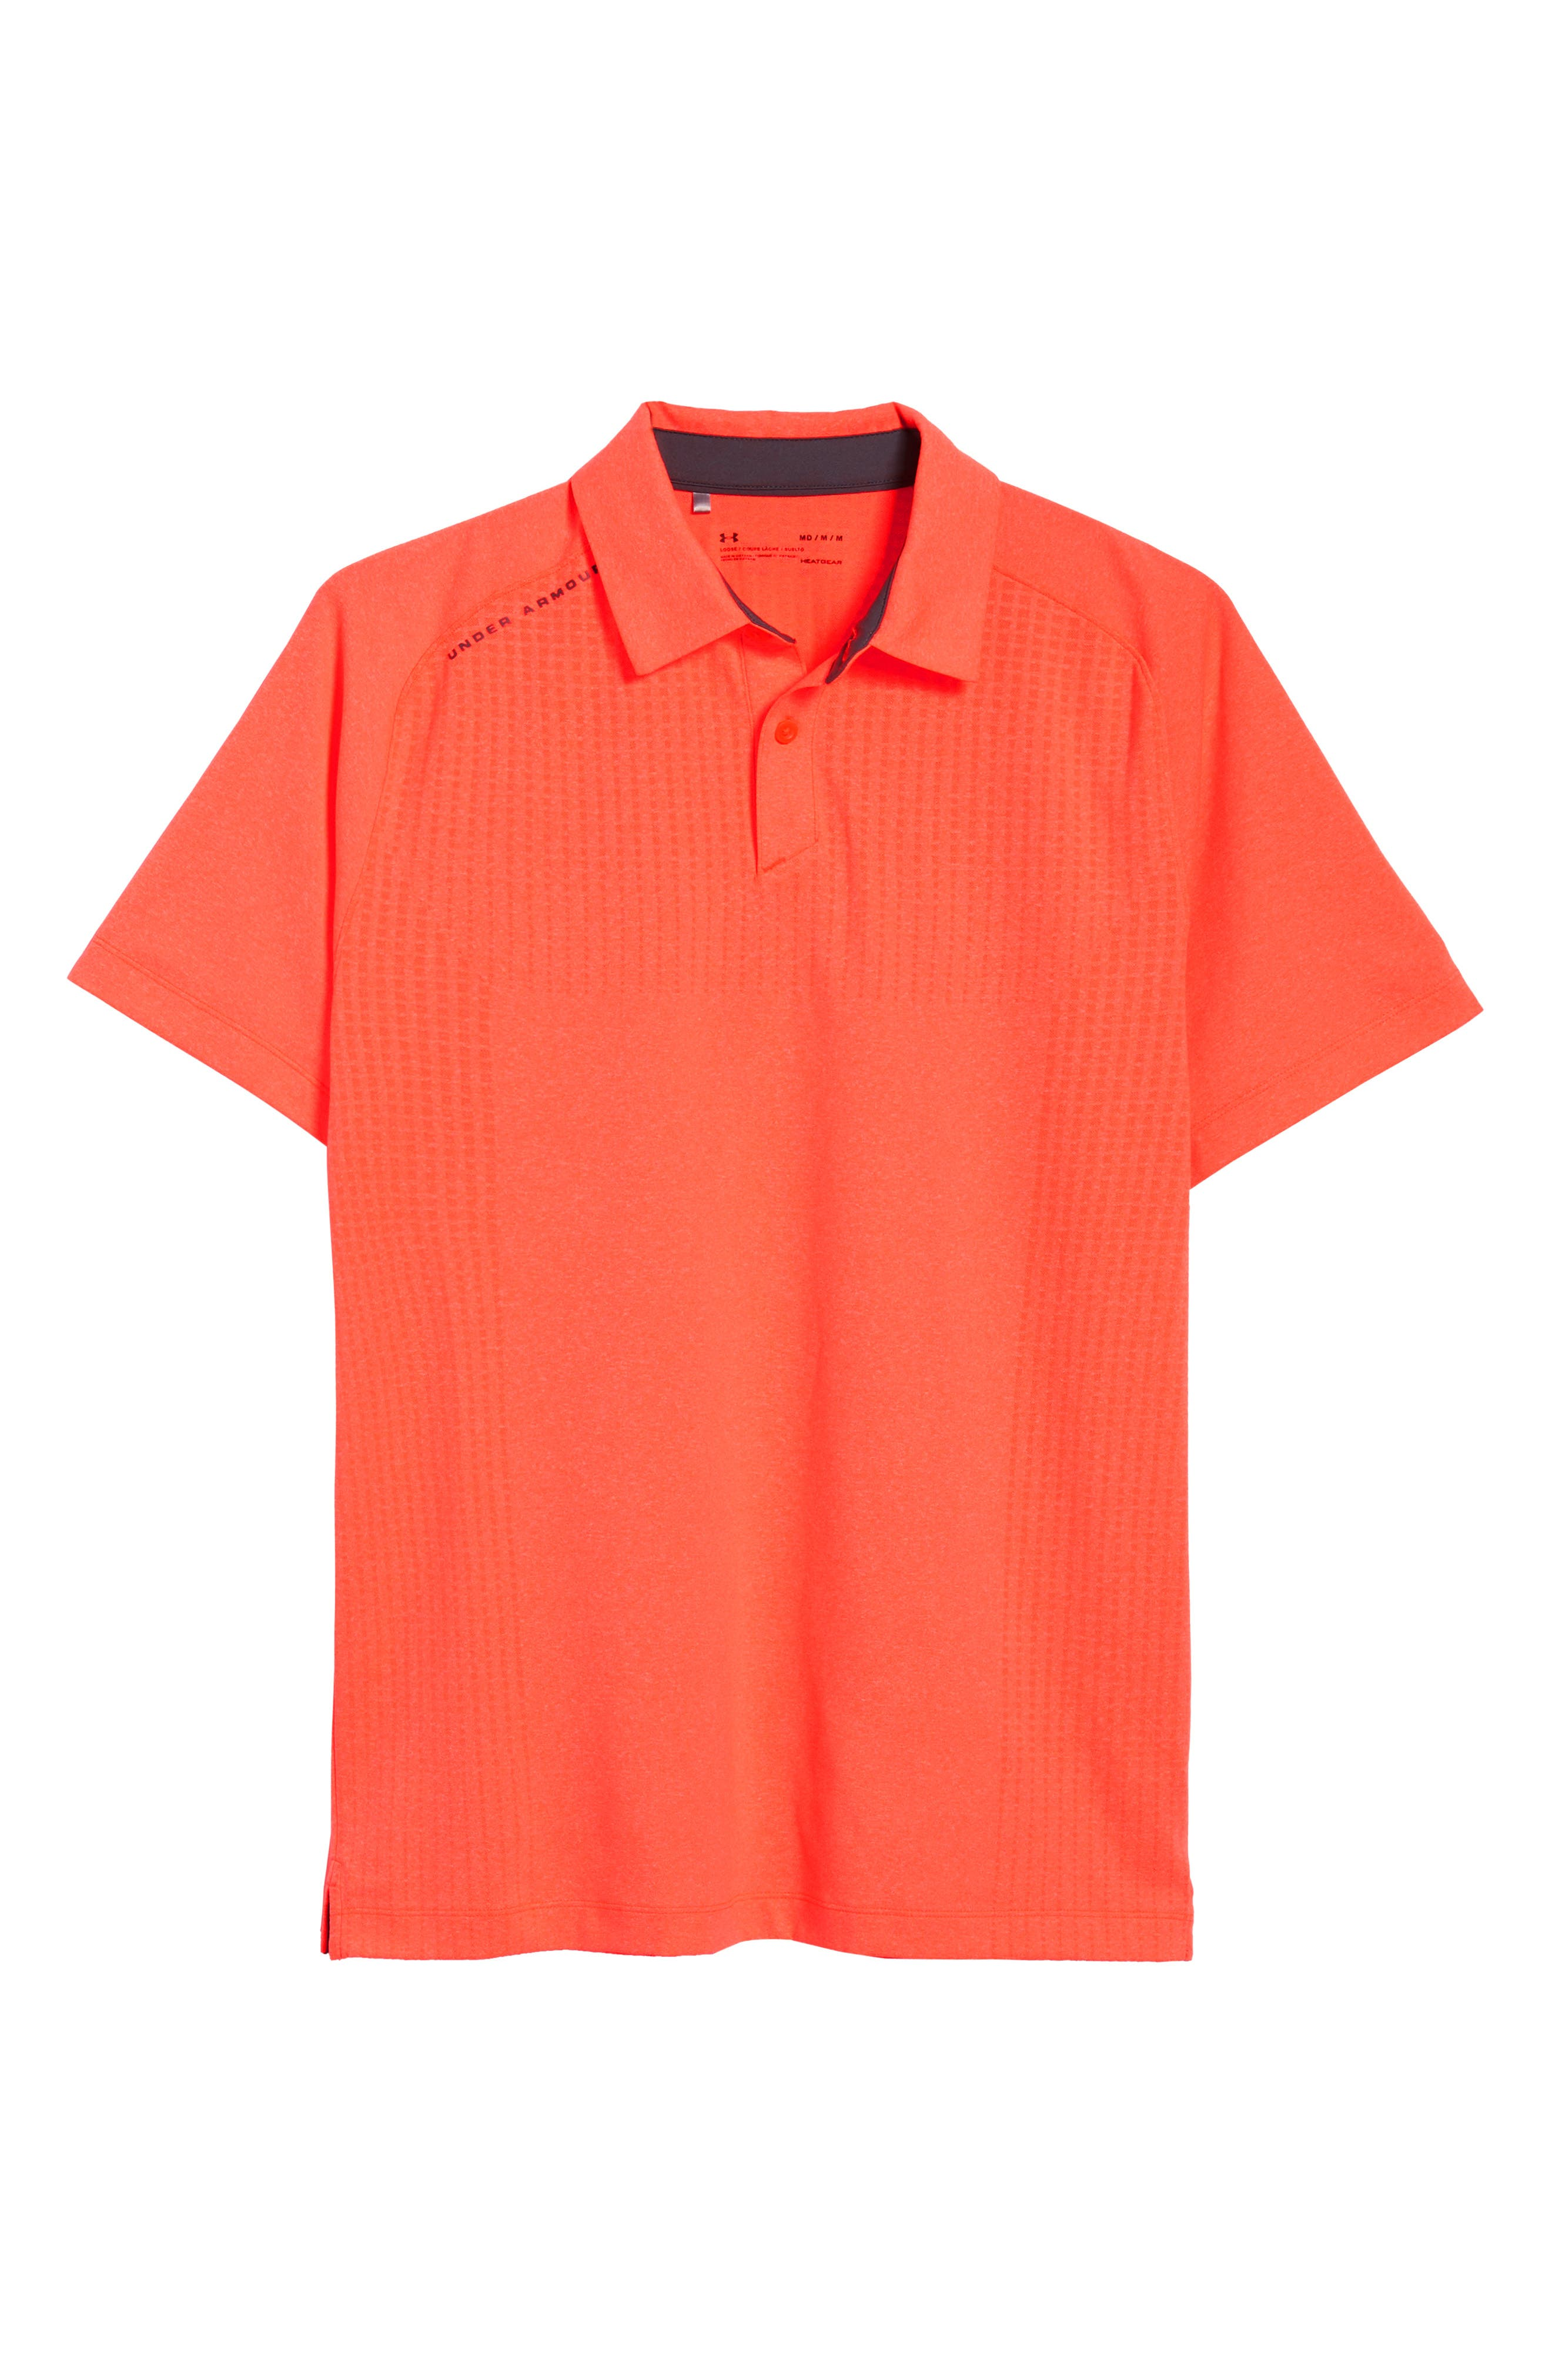 Threadborne Outer Glow Regular Fit Polo Shirt,                             Alternate thumbnail 6, color,                             NEON CORAL LIGHT/ HEATHER